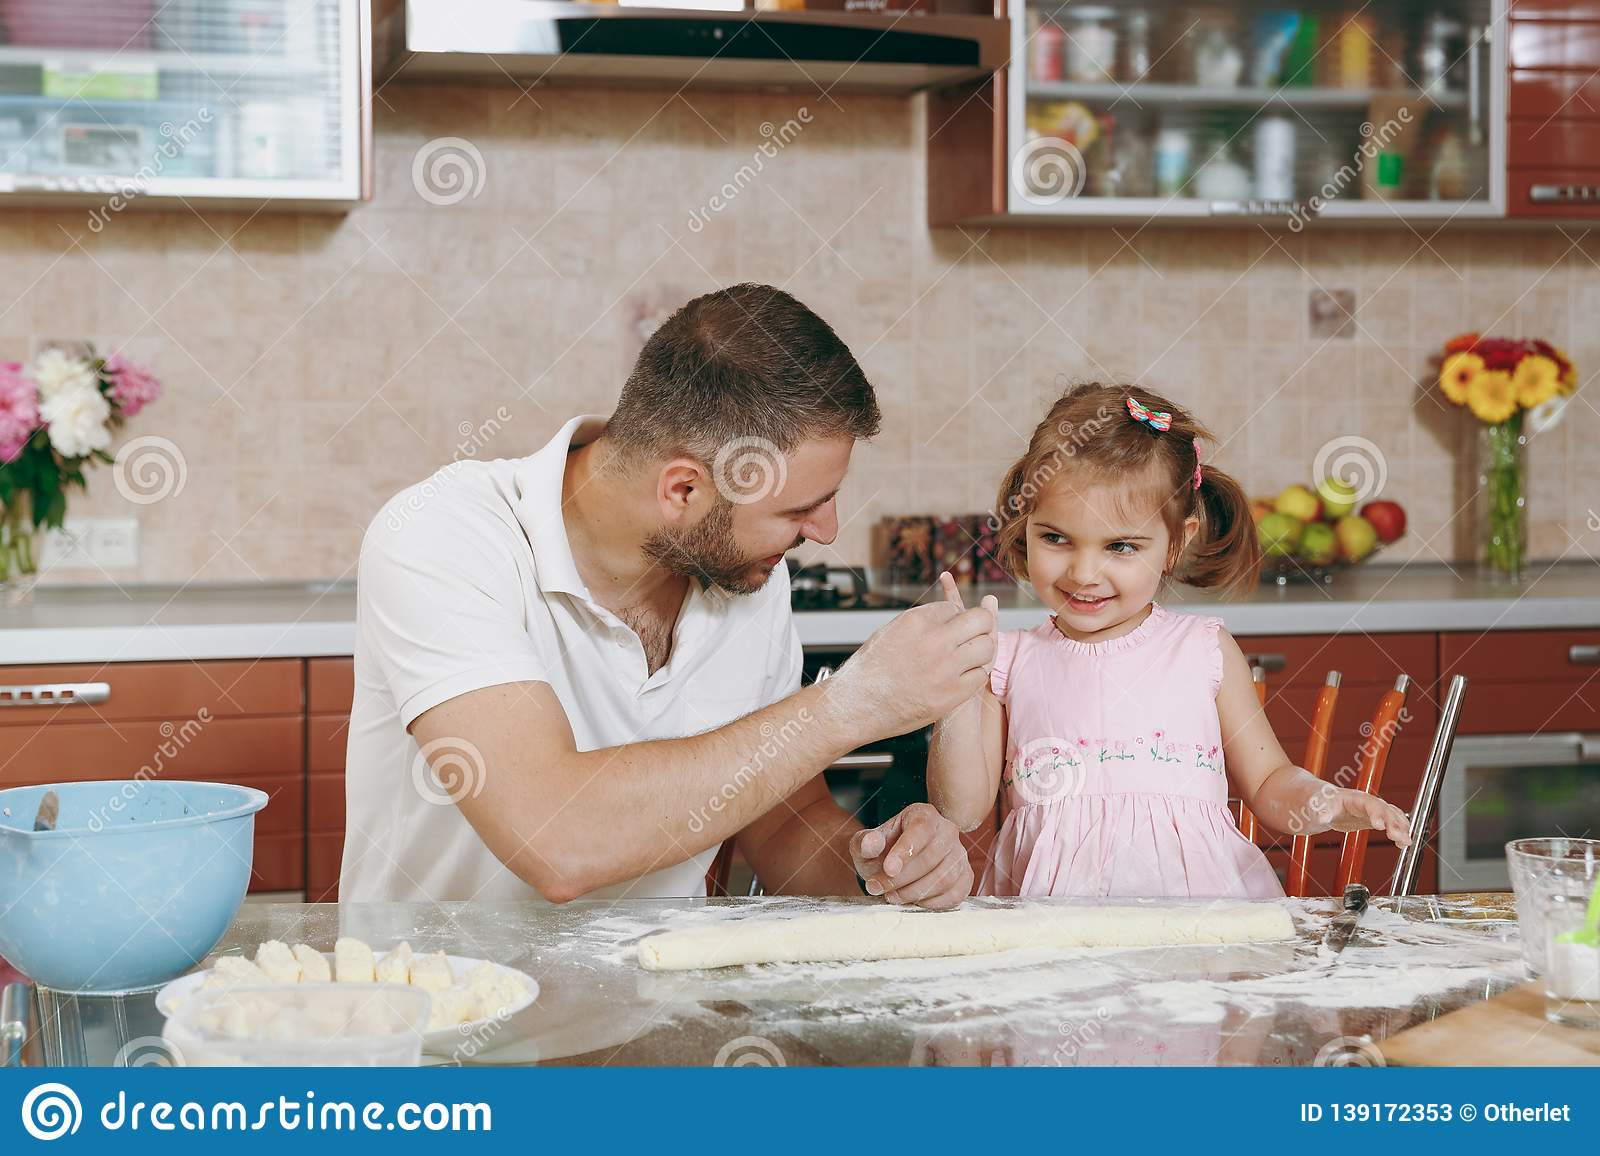 Little kid girl helps man to cook lazy dumplings, play in light kitchen at table. Happy family dad, child daughter